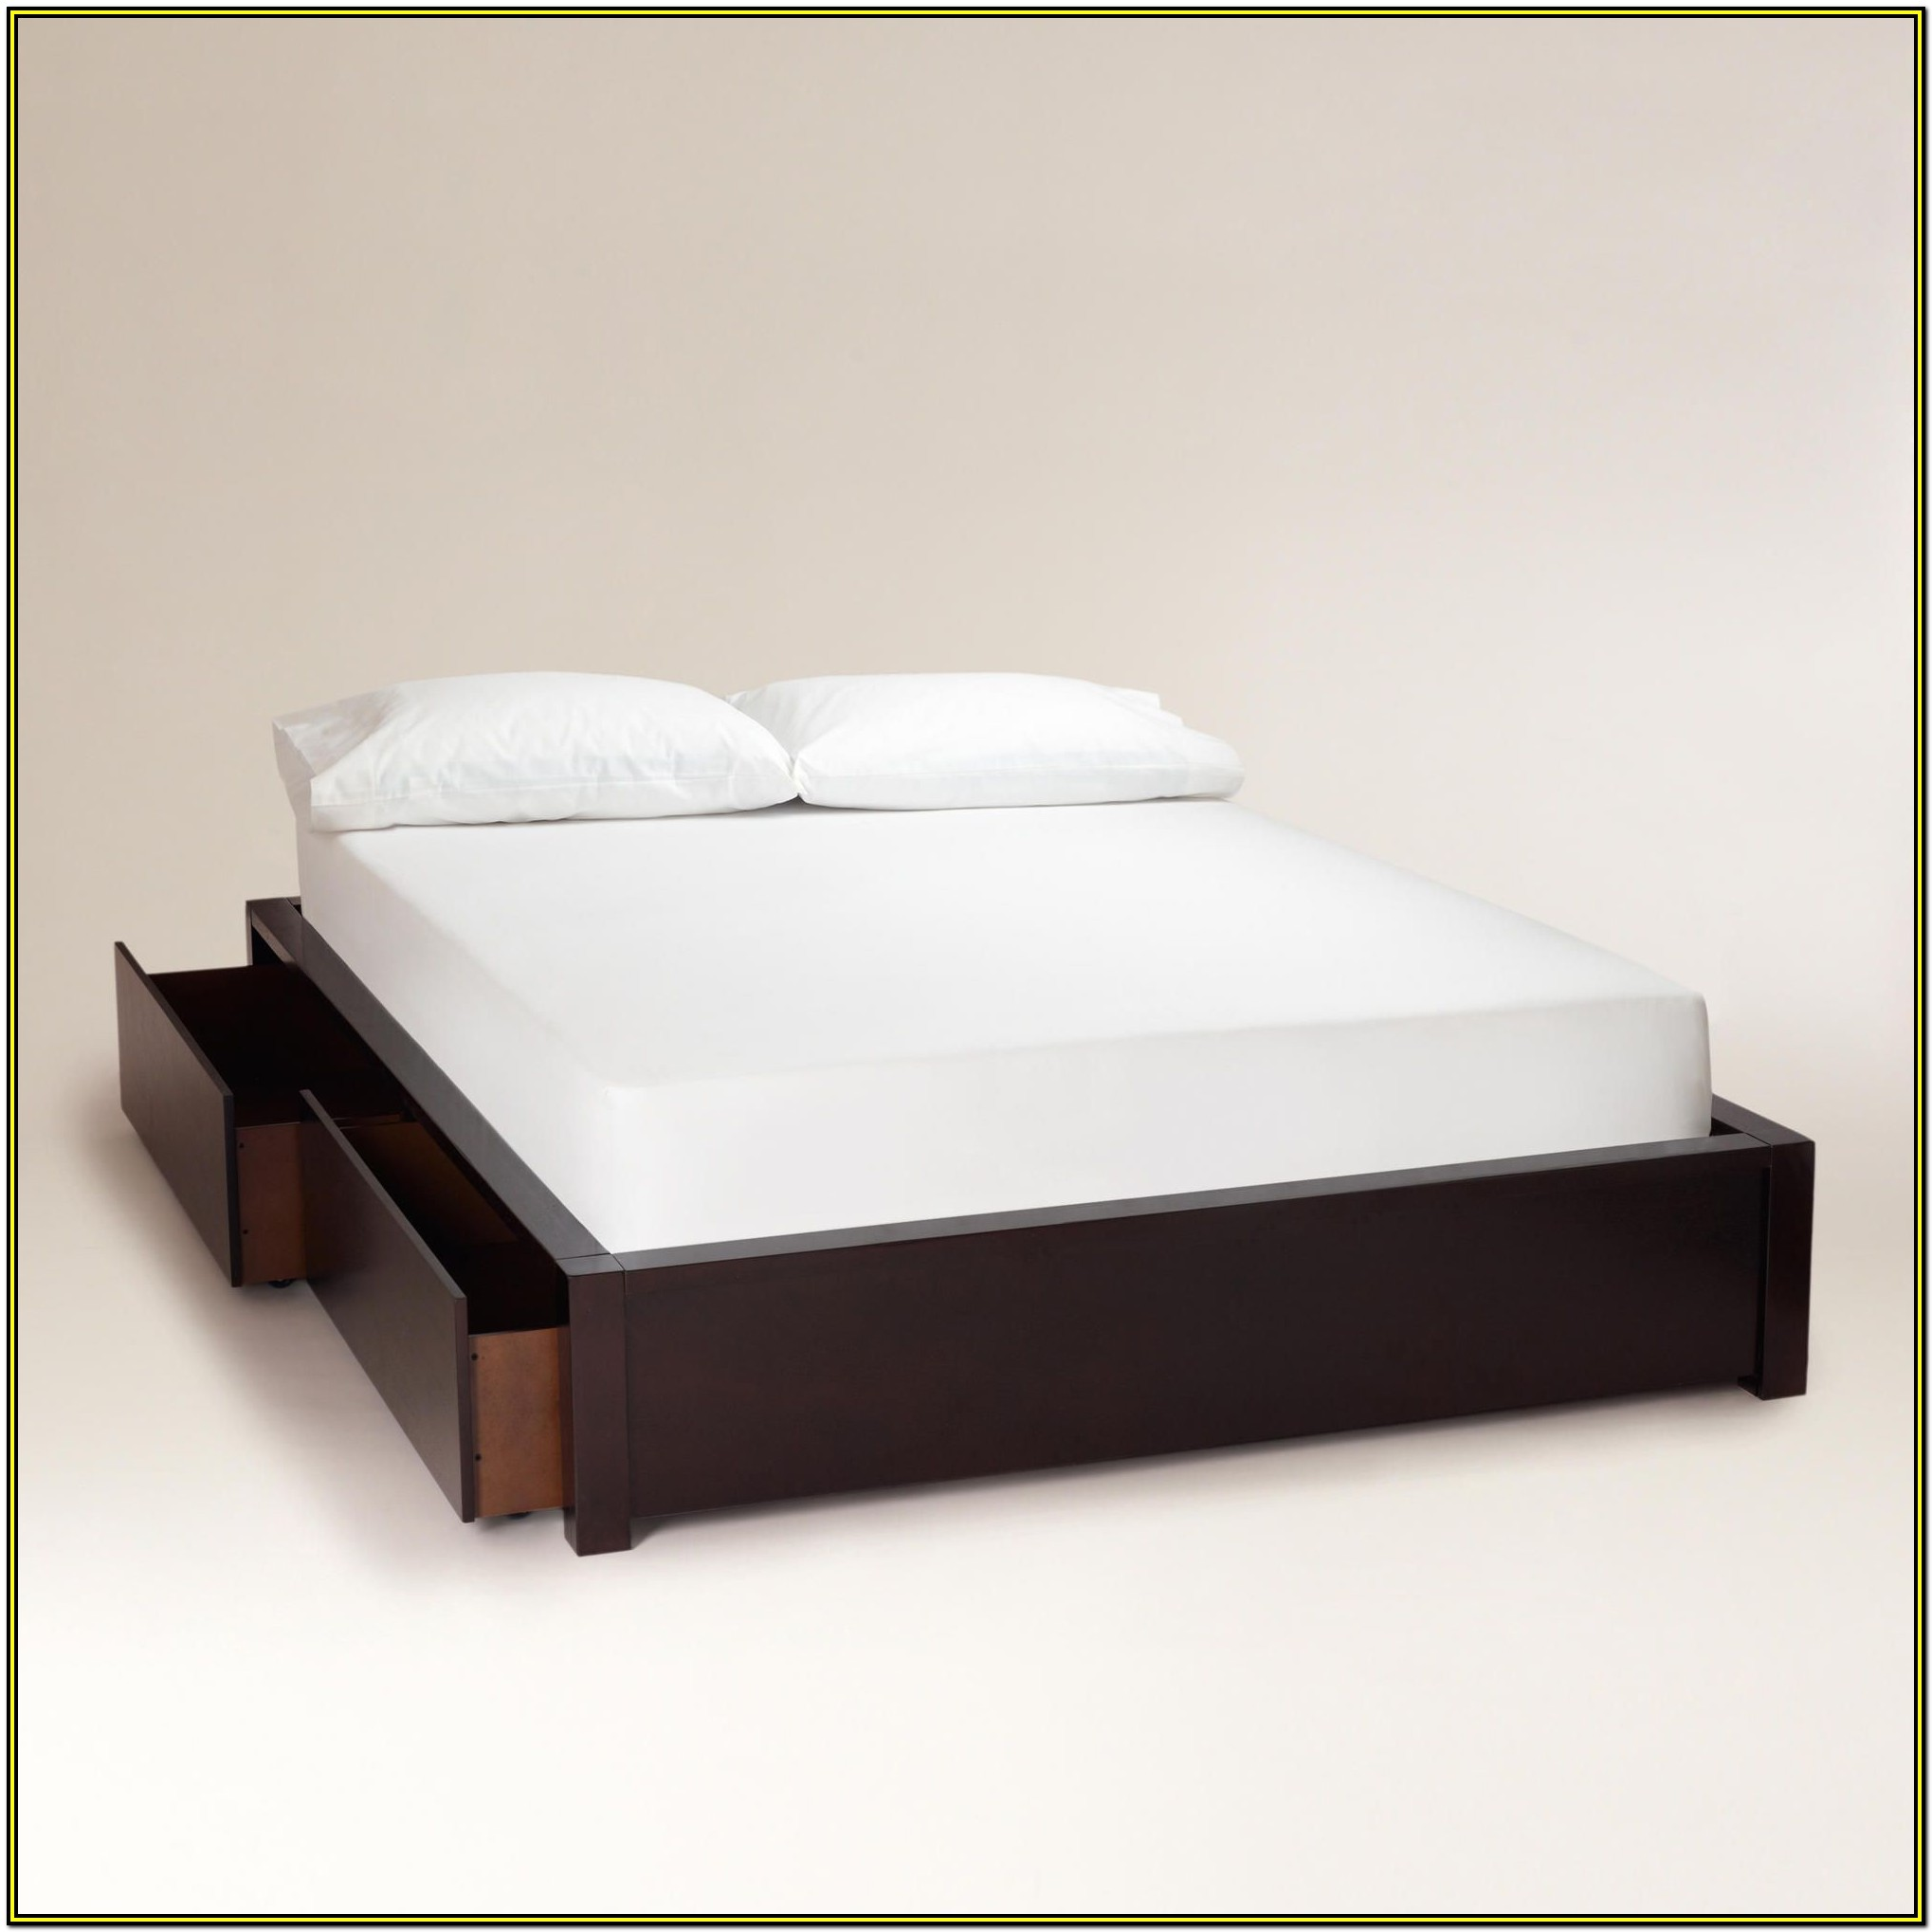 Queen Size Wood Bed Frame With Drawers